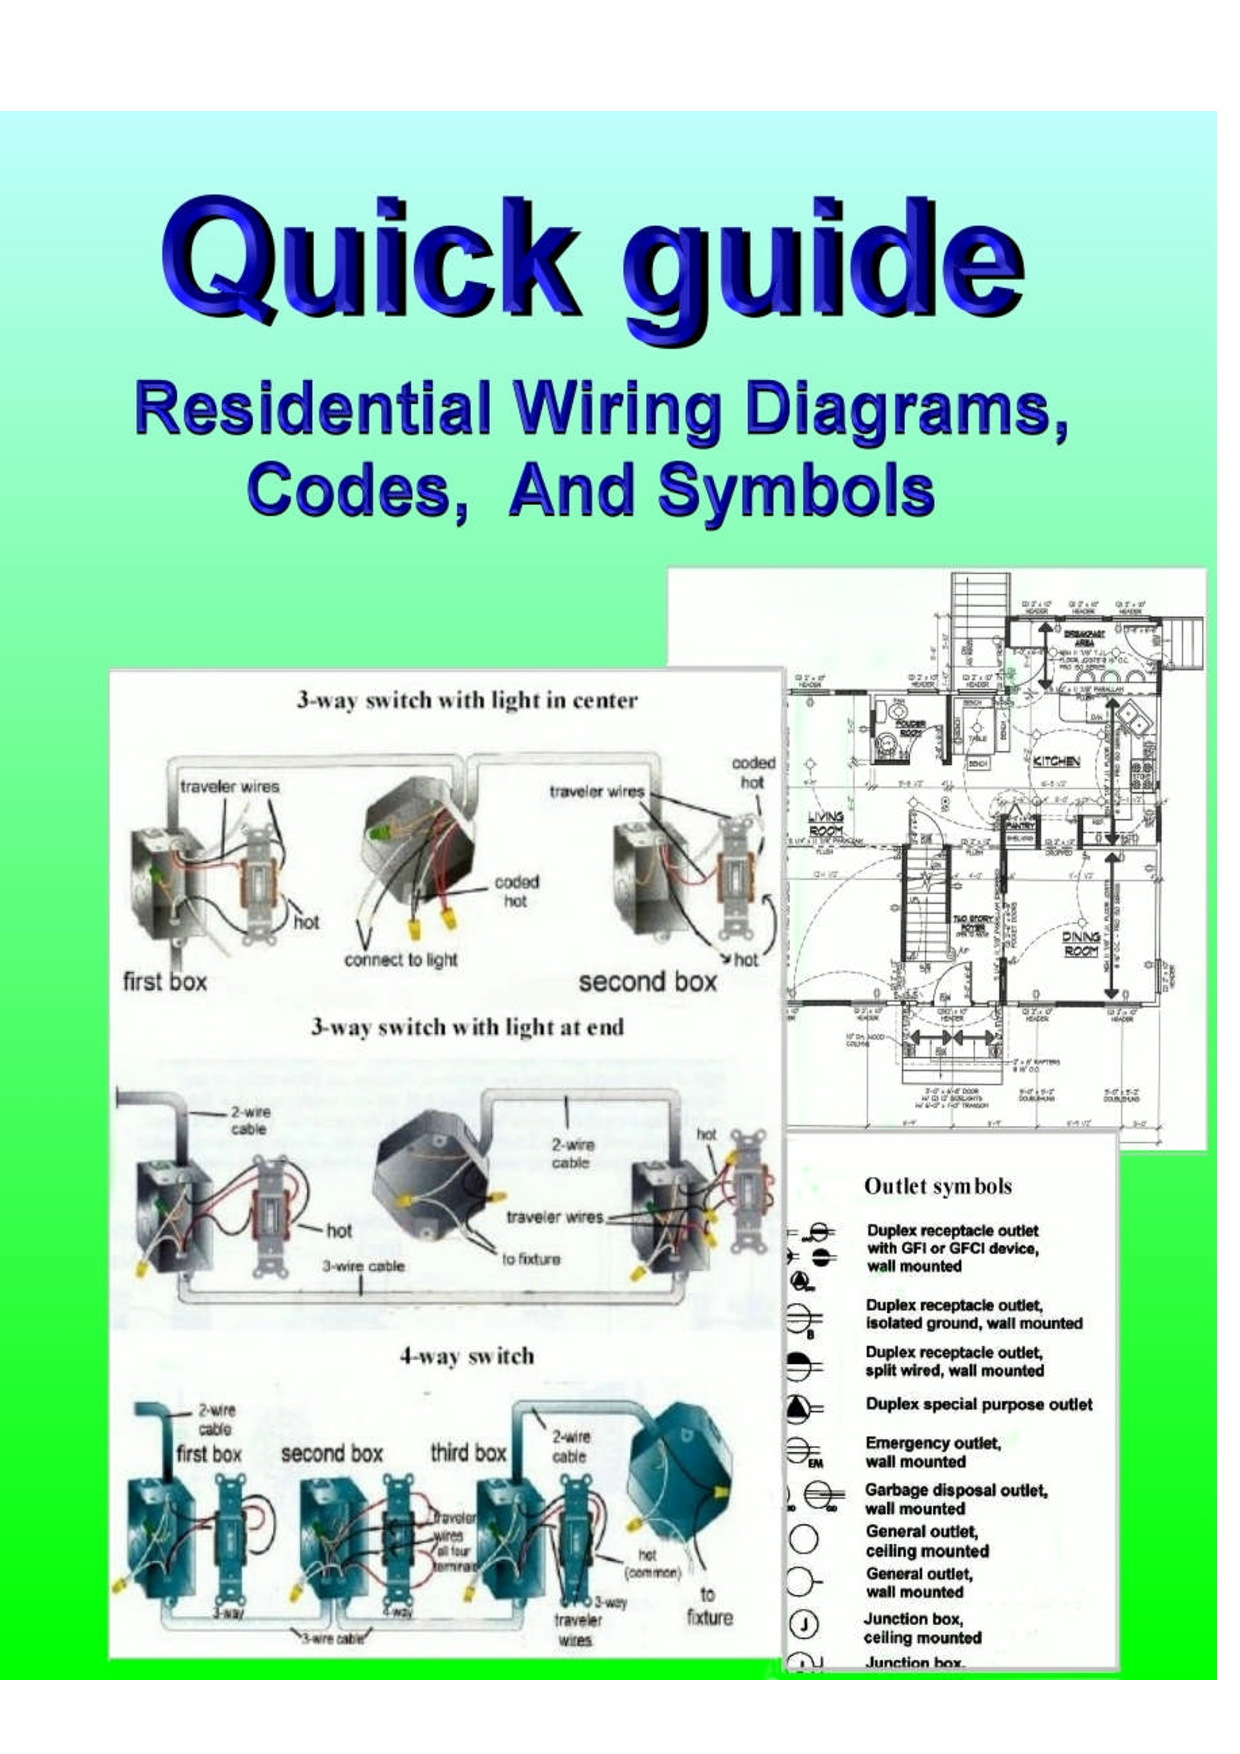 Home Electrical Wiring Diagramspdf Download Legal Documents 39 For Outdoor Motion Light Free Printable Schematic Pages With Many Diagrams And Illustrations A Step By Guide